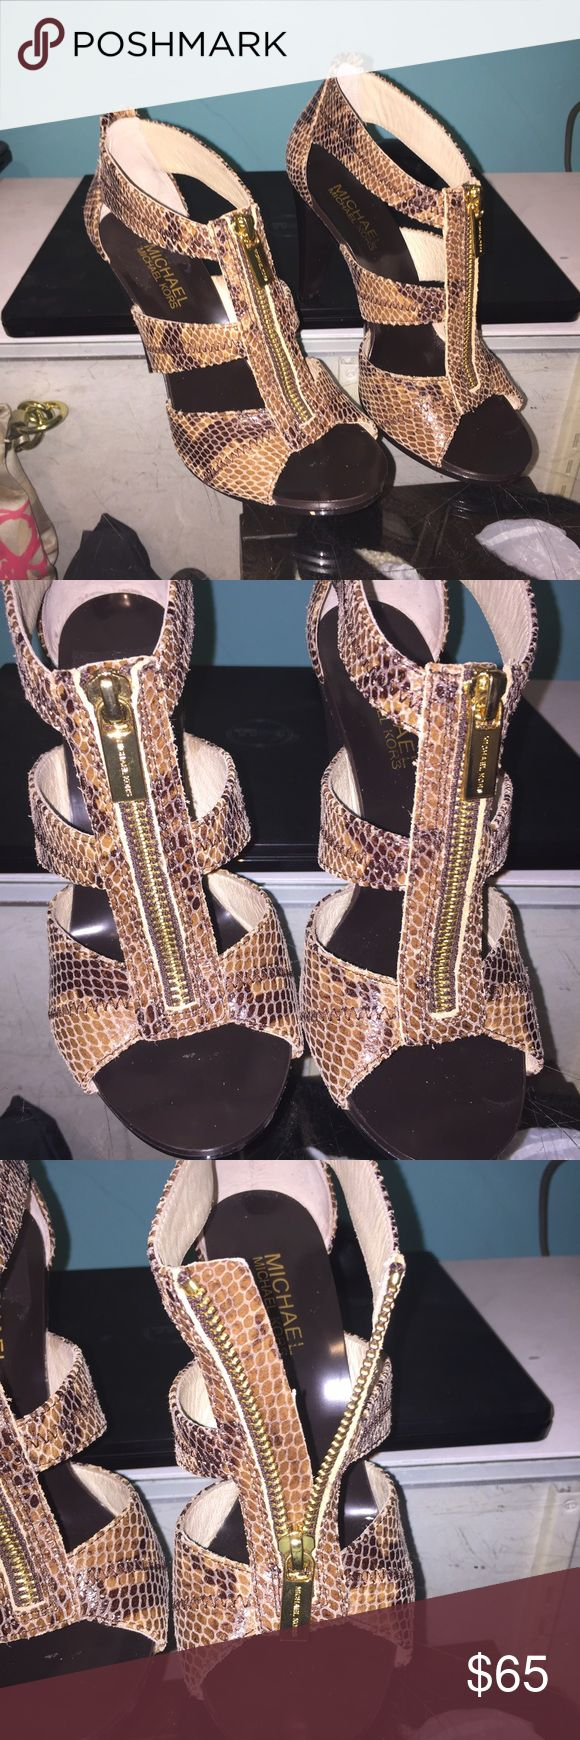 Michael Kors heels These look amazing! Super cute for summer, brown with animal print. Zip up front. MICHAEL Michael Kors Shoes Heels